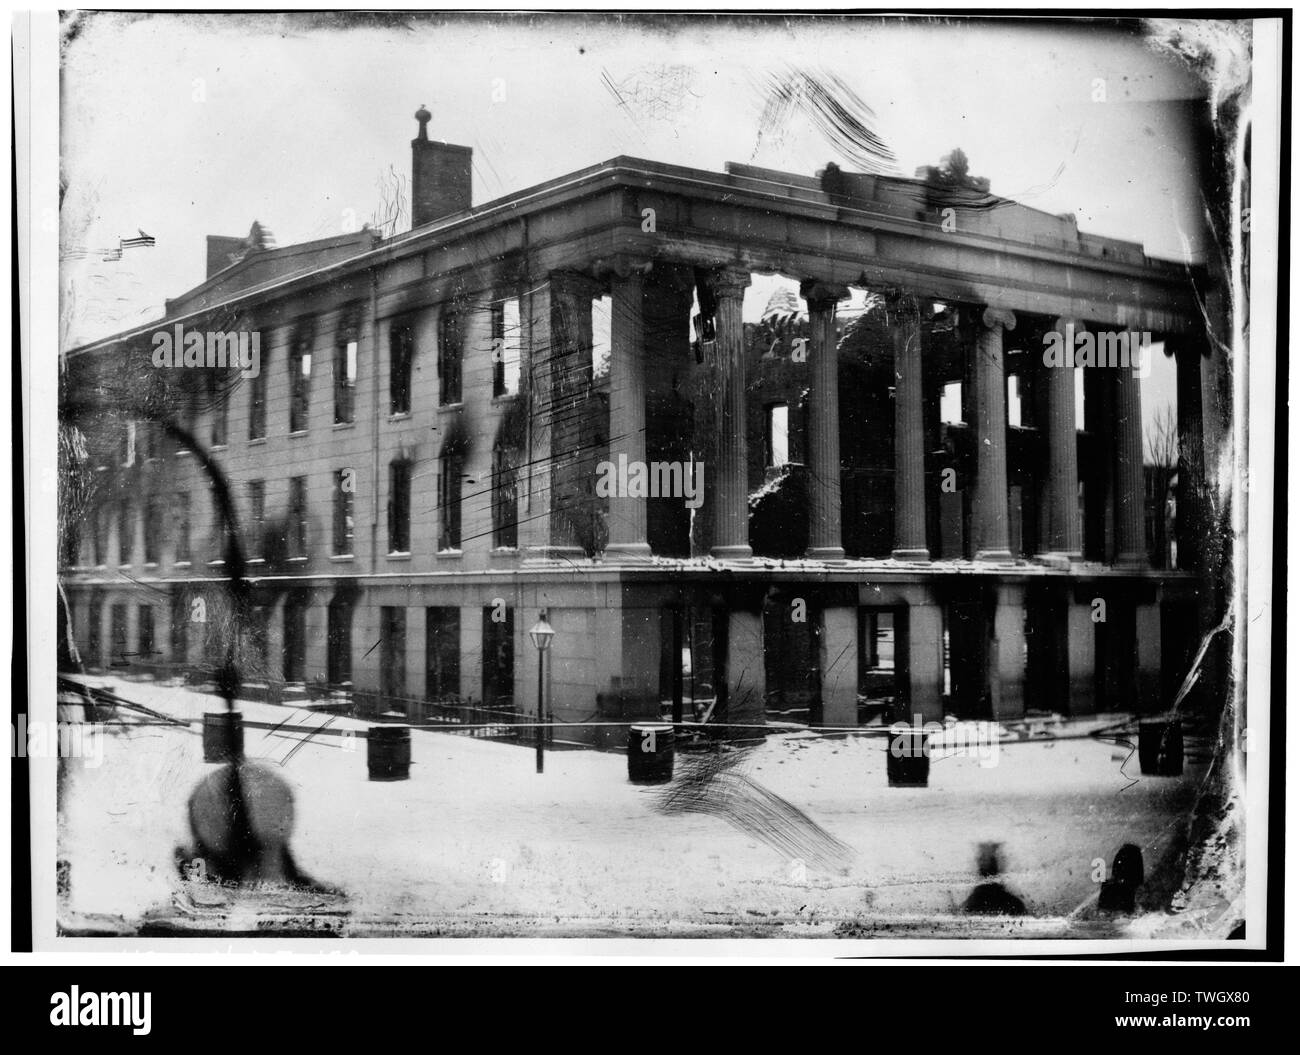 RUINS OF THE MERCHANTS' EXCHANGE. THE BUILDING WAS DESTROYED BY FIRE ON THE NIGHT OF JANUARY 8, 1854. VIEW FROM A DAGUERREOTYPE IN THE COLLECTION OF THE MAINE HISTORICAL SOCIETY - Portland Merchants' Exchange, North side of Middle Street, between Exchange and Market Streets, Portland, Cumberland County, ME - Stock Image